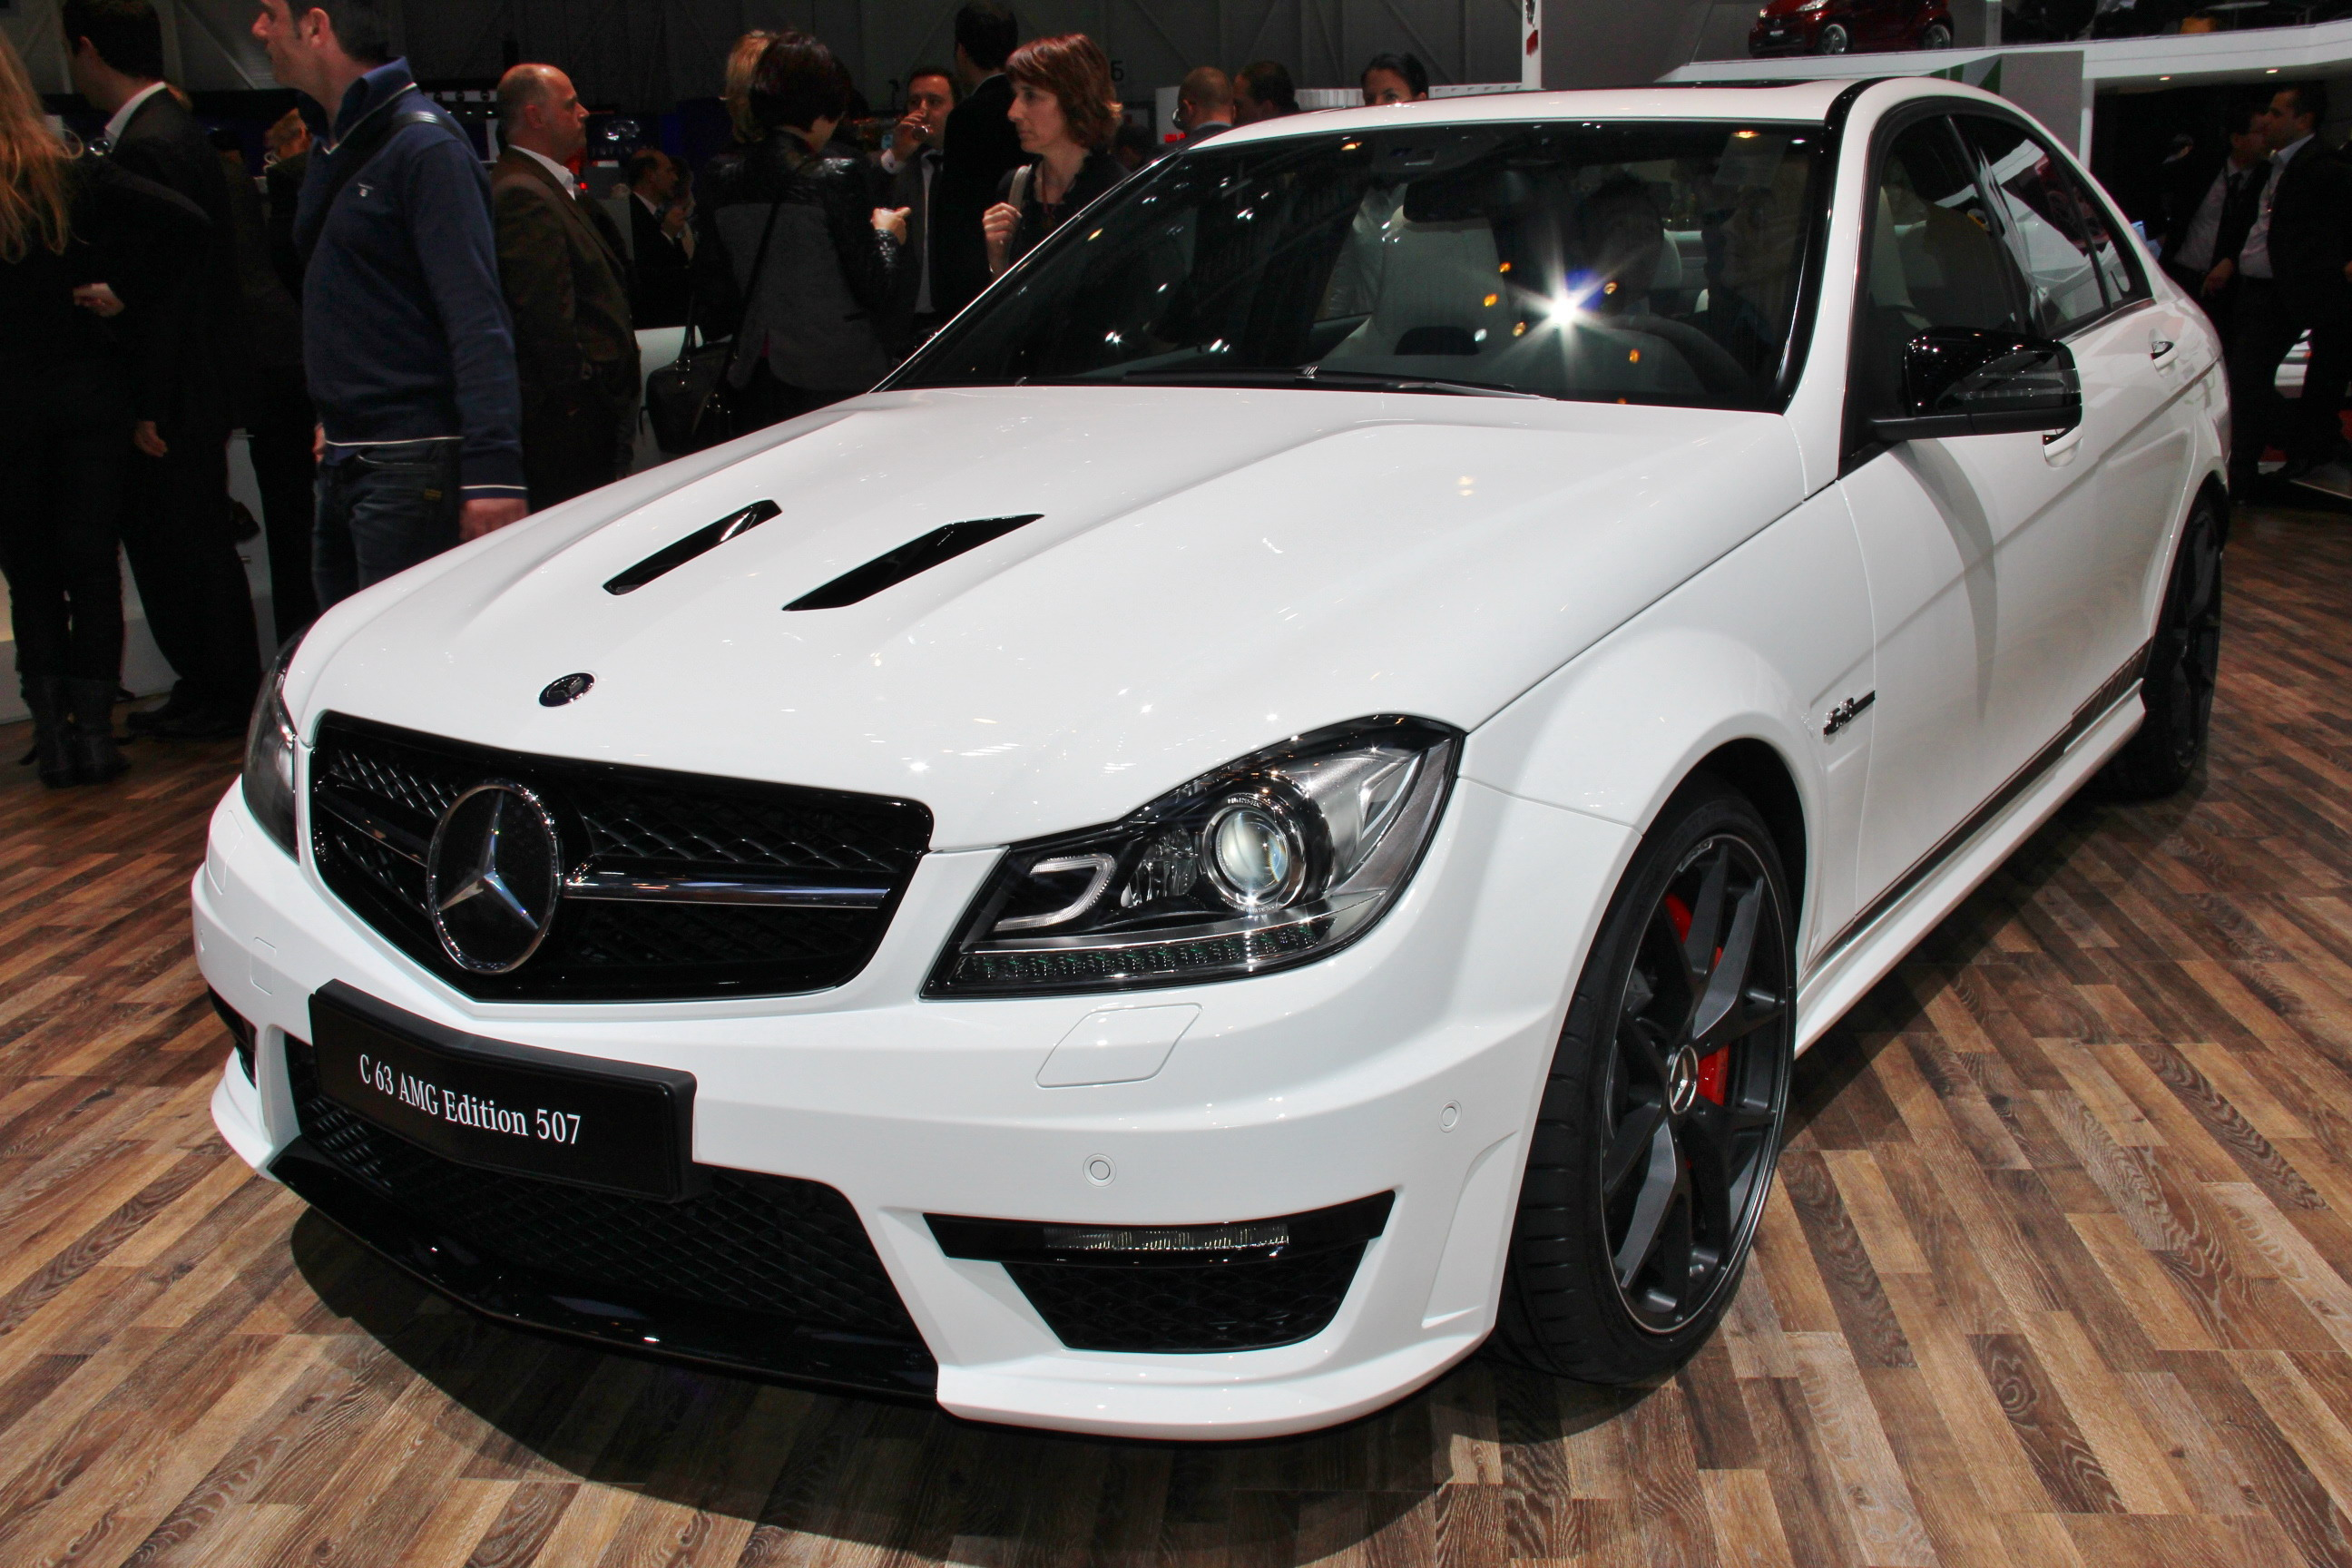 2014 mercedes c 63 amg edition 507 review top speed for How much is a mercedes benz c63 amg